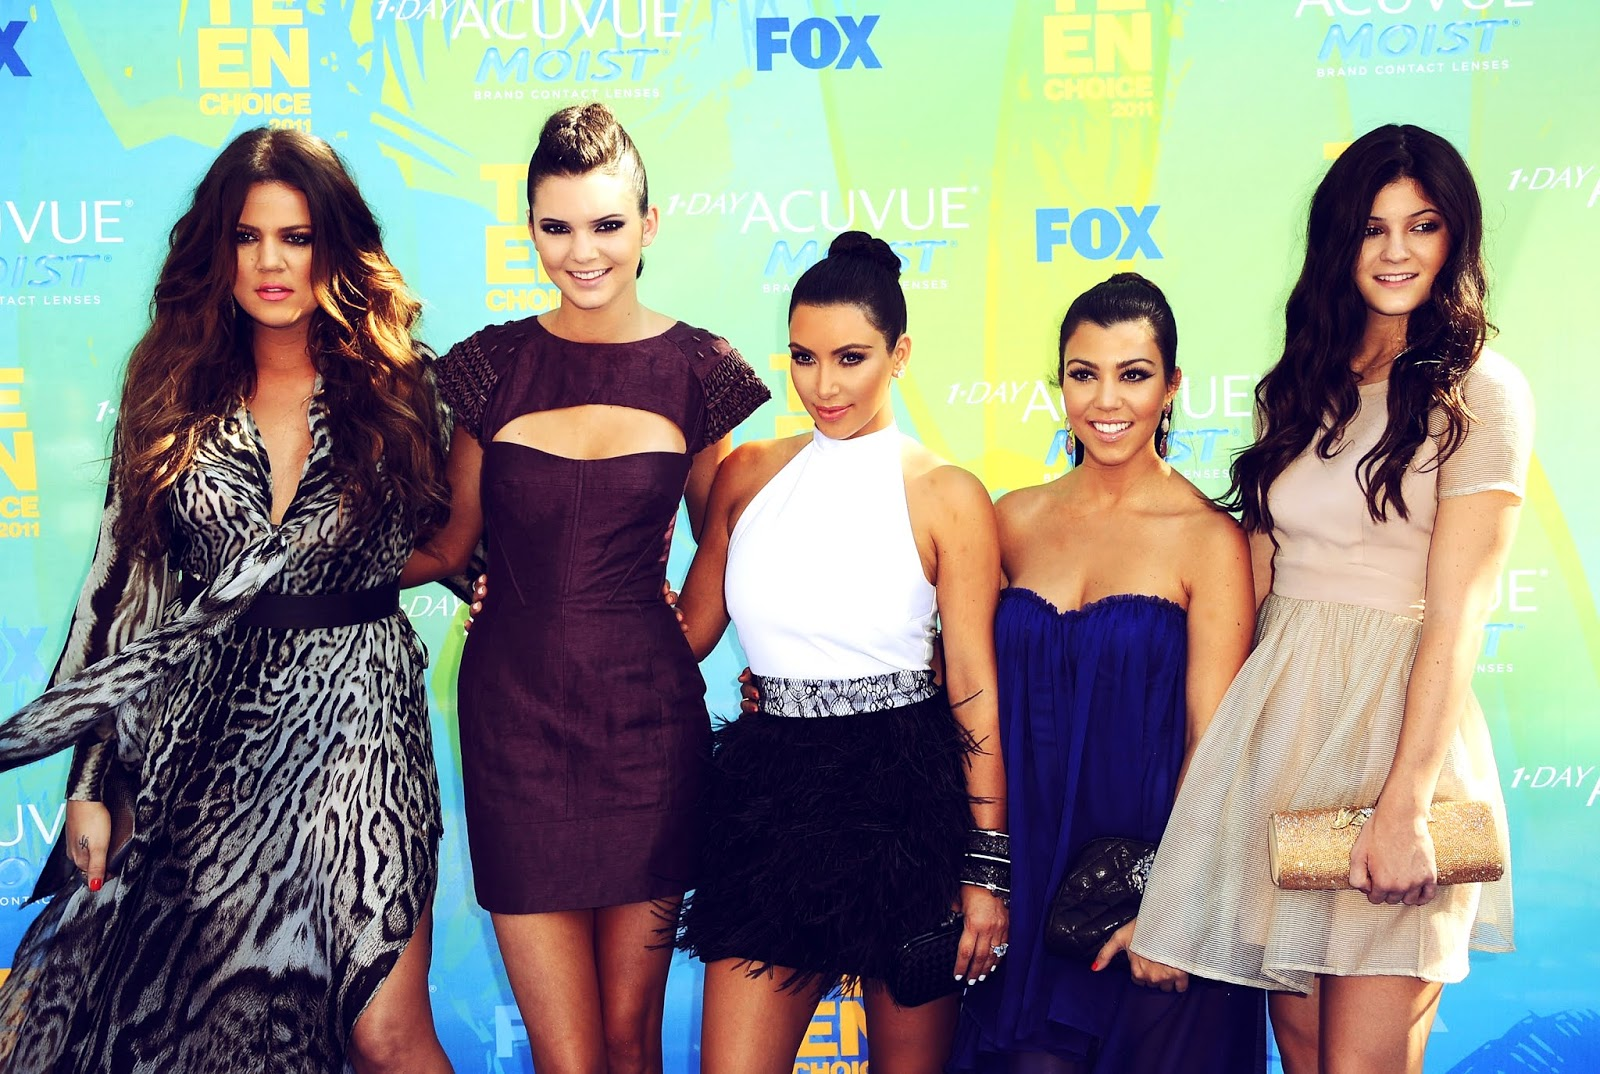 39 - Teen Choice Awards in August 11, 2011